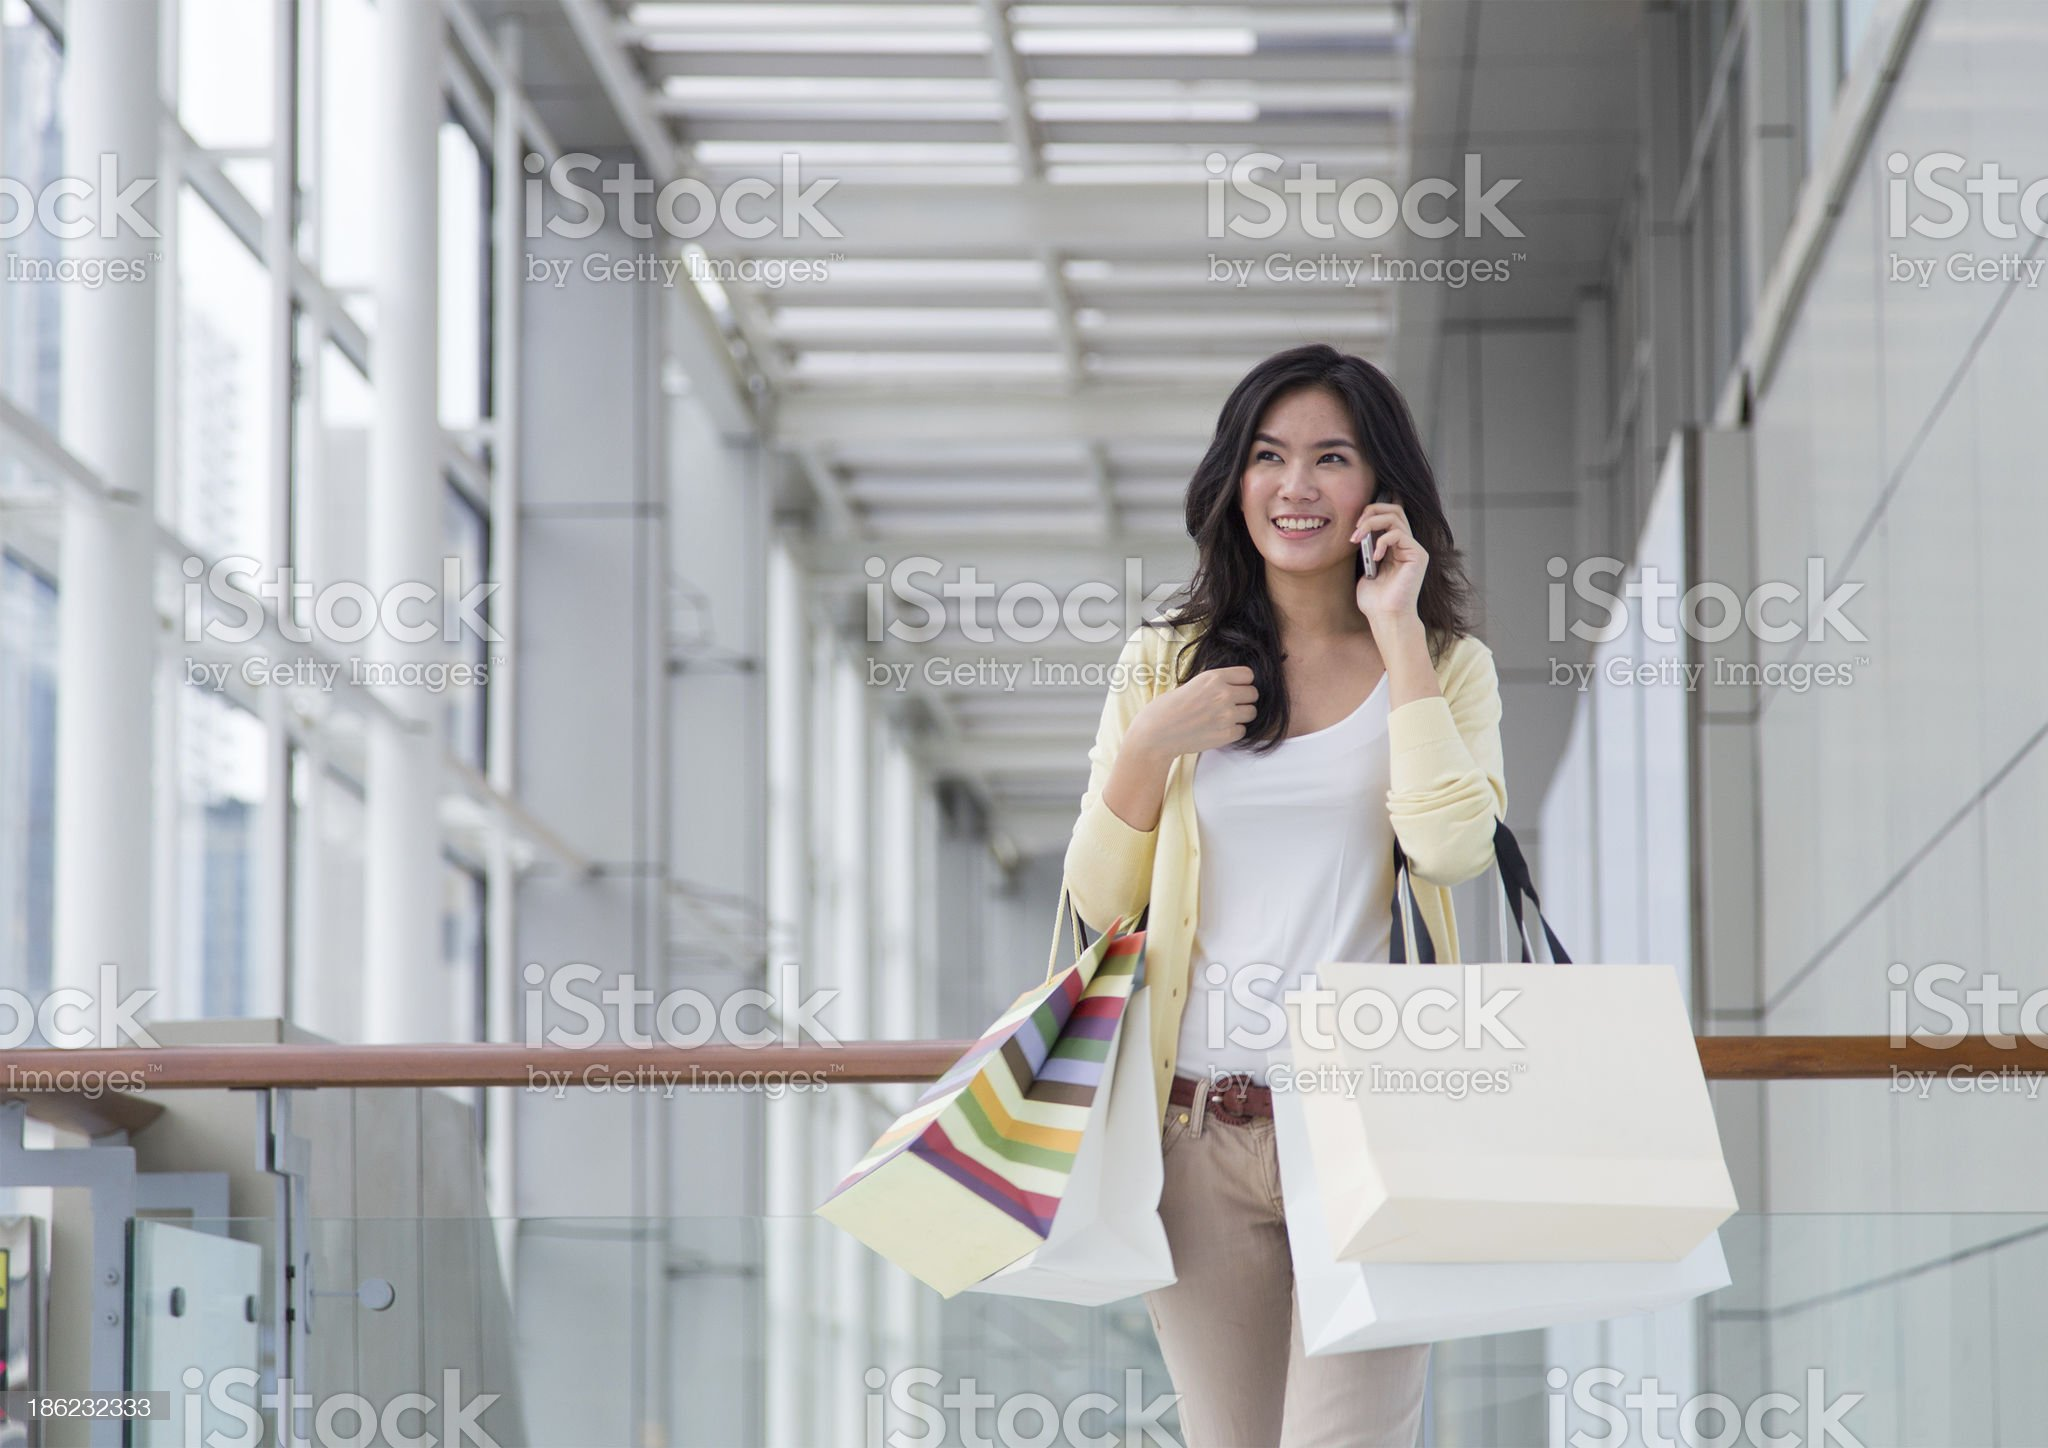 Happy young Asian woman shopping. royalty-free stock photo